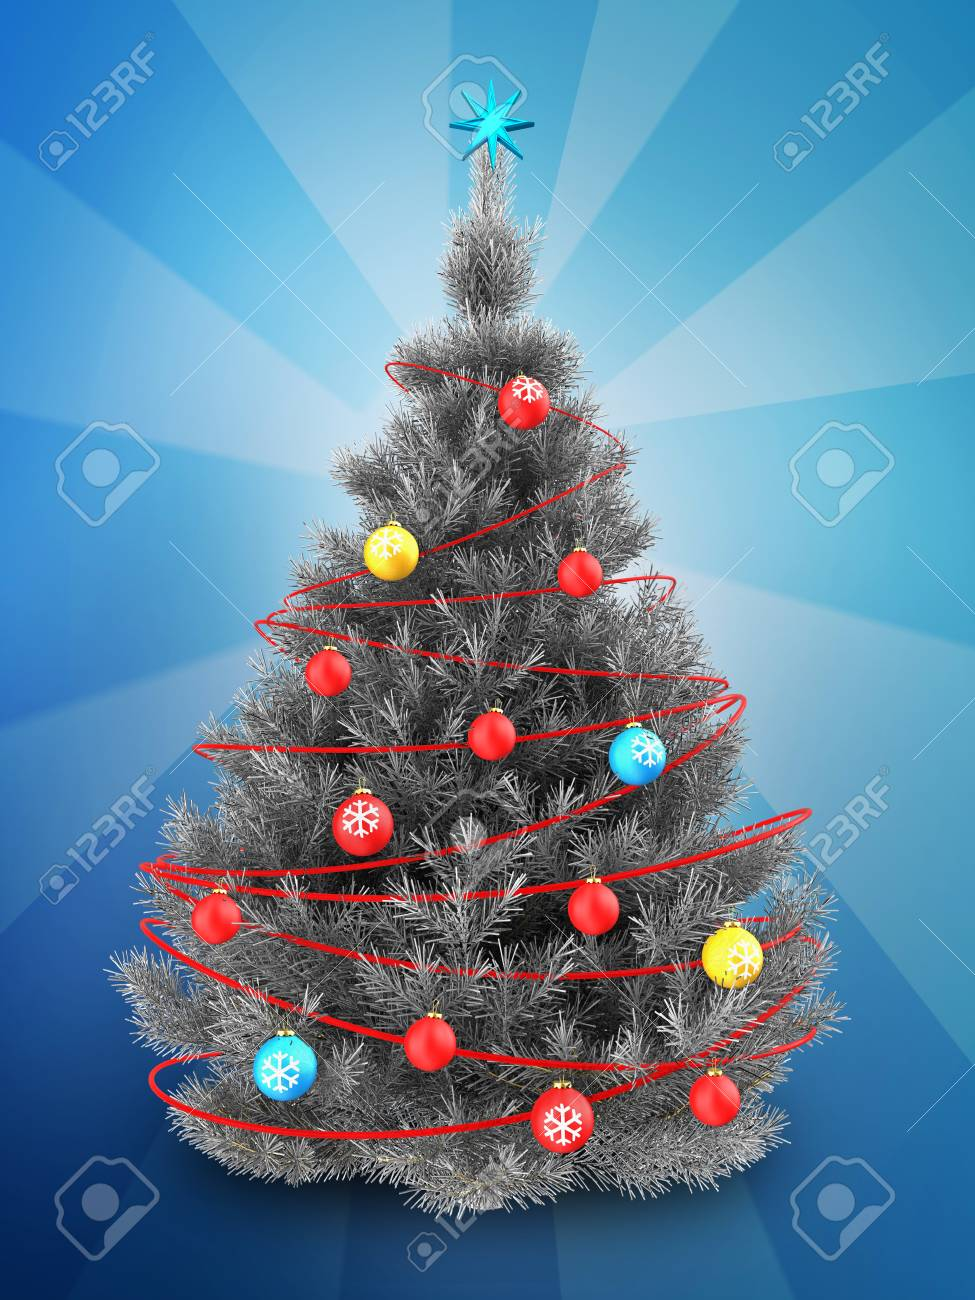 3d Illustration Of Silver Christmas Tree With Red Decorations Stock Photo Picture And Royalty Free Image Image 89085785